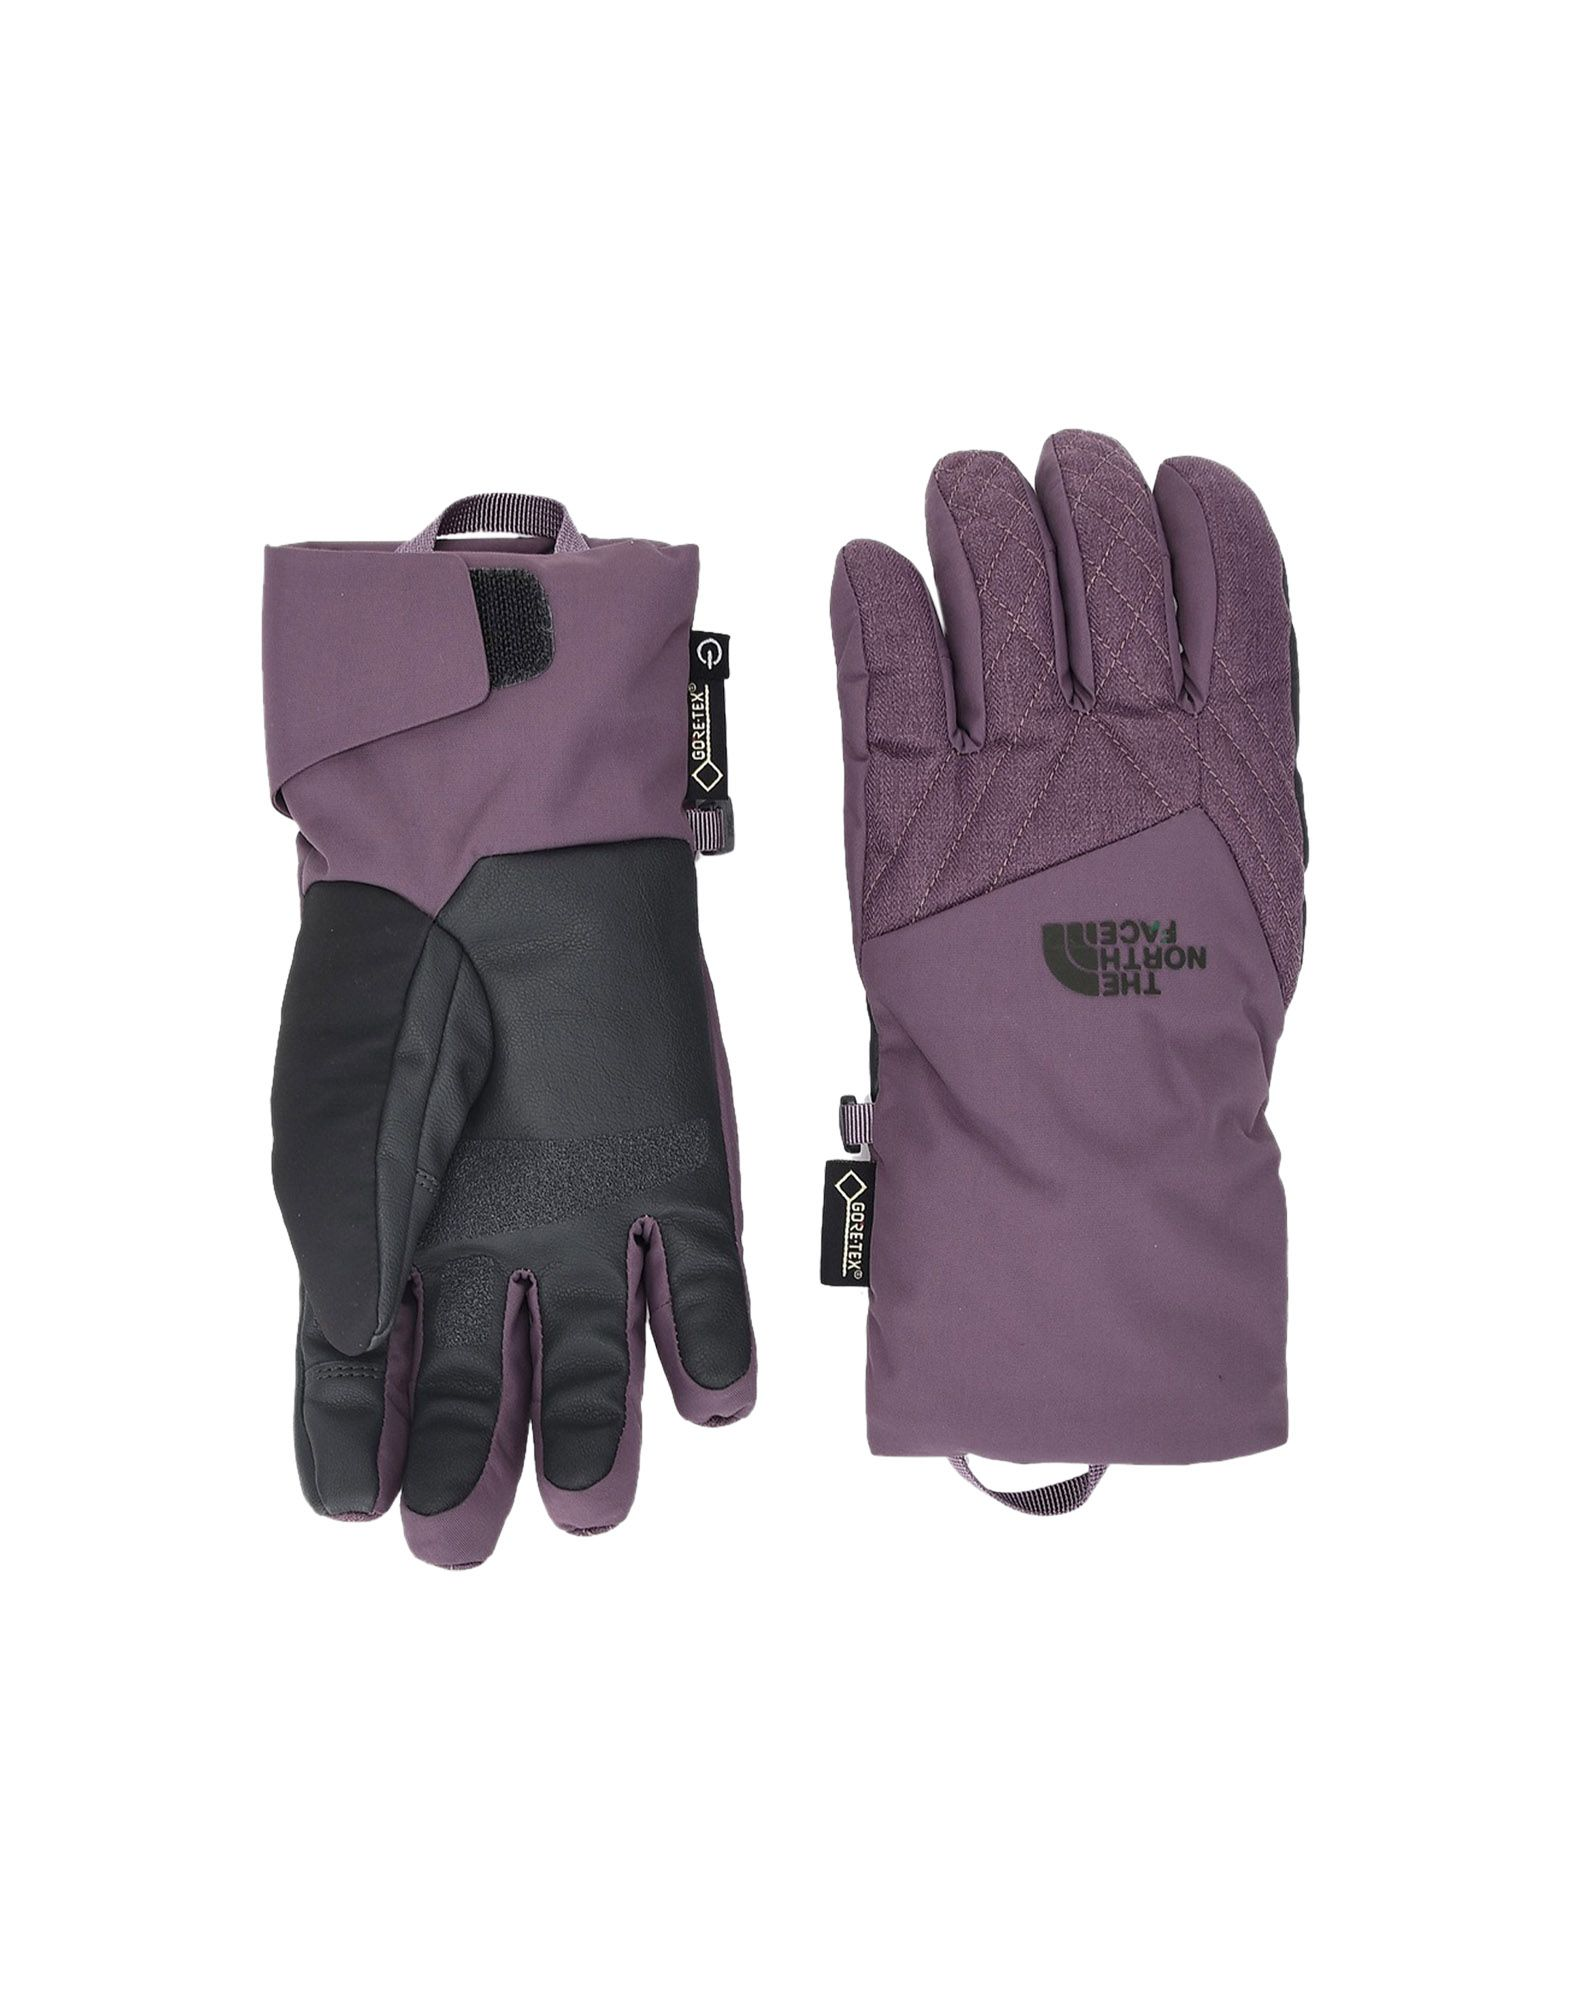 6868daa6e THE NORTH FACE Gloves - Accessories | YOOX.COM